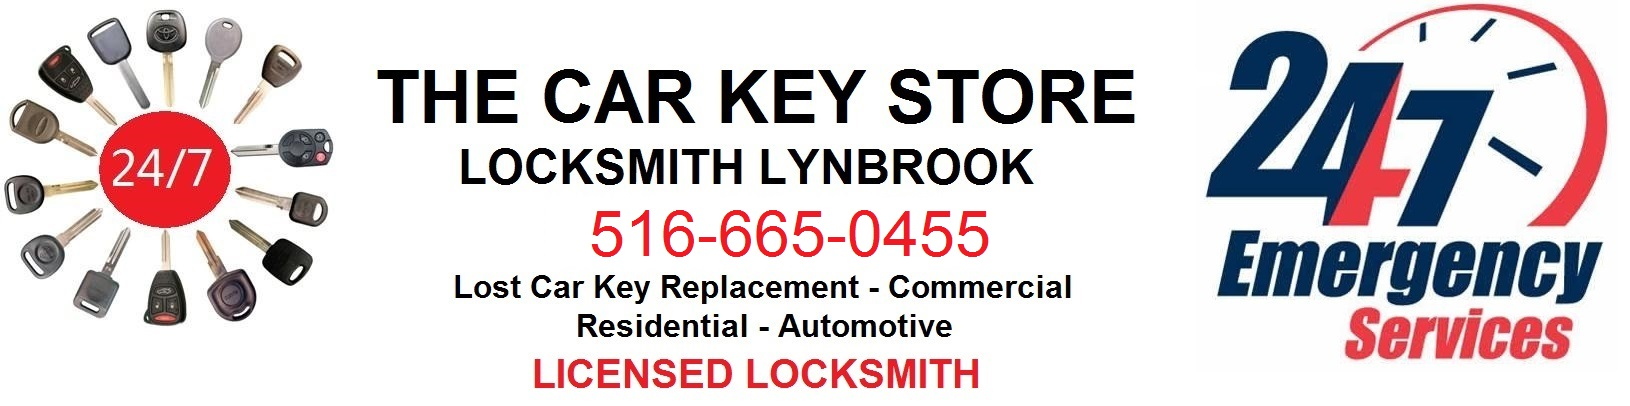 Lynbrook / Malverne Locksmith 516-665-0455 , Rockville Centre 24 Hour NY Replacement Lost Car Key